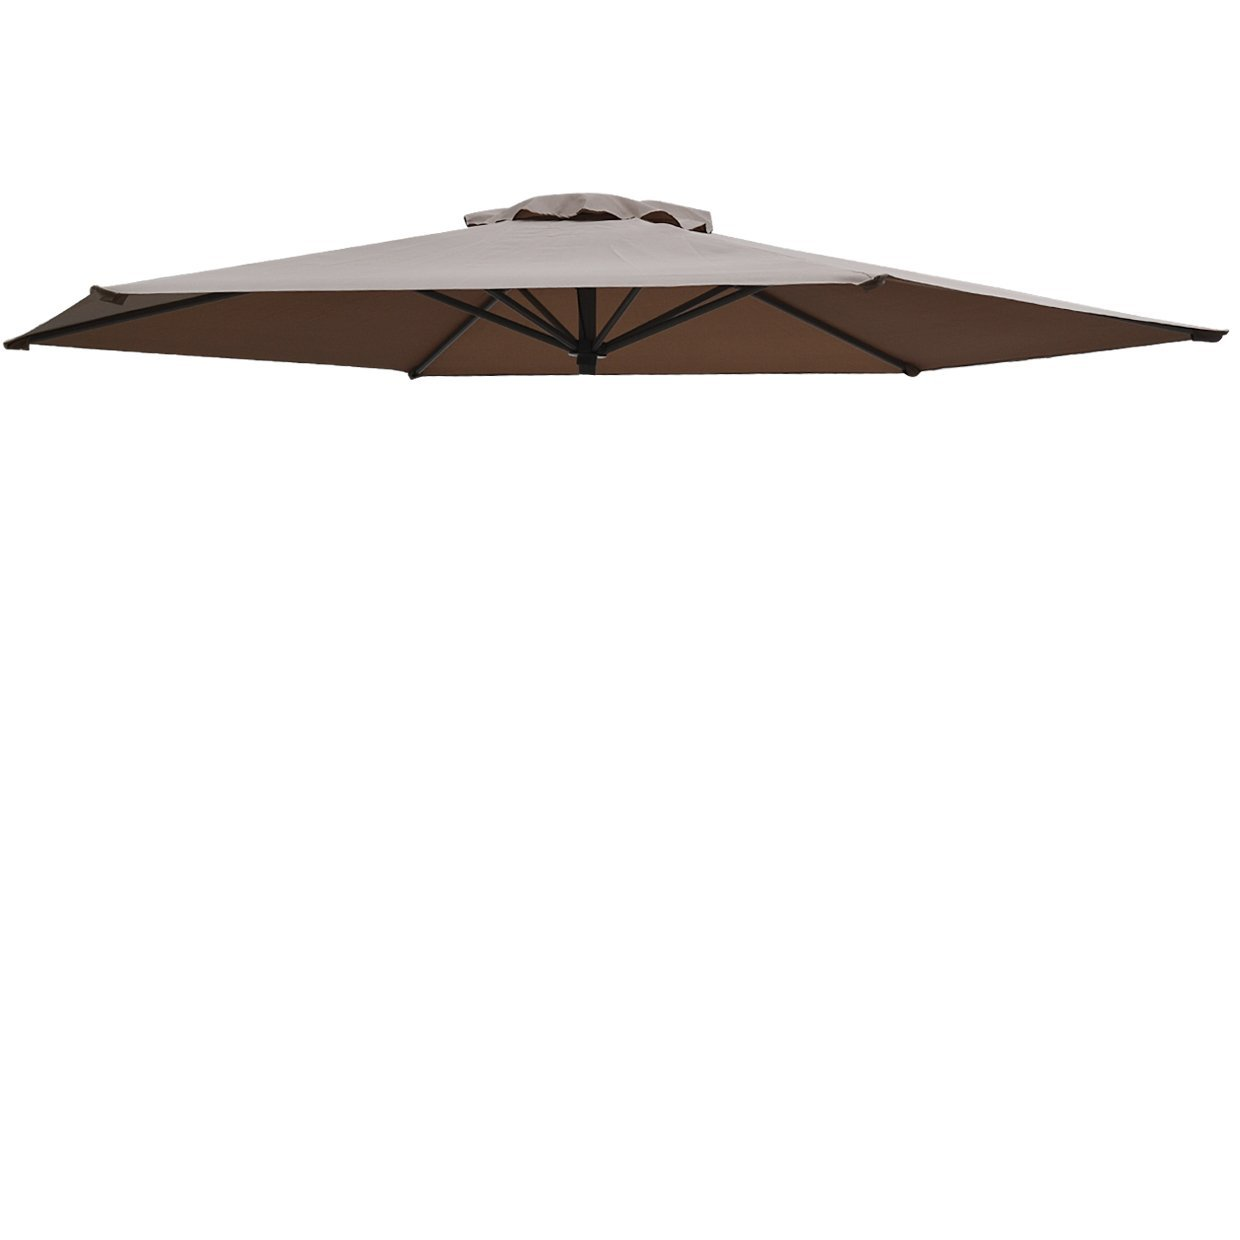 Exceptionnel Replacement Patio Umbrella Canopy Cover For 11.5ft 8 Ribs Umbrella Taupe ( CANOPY ONLY)